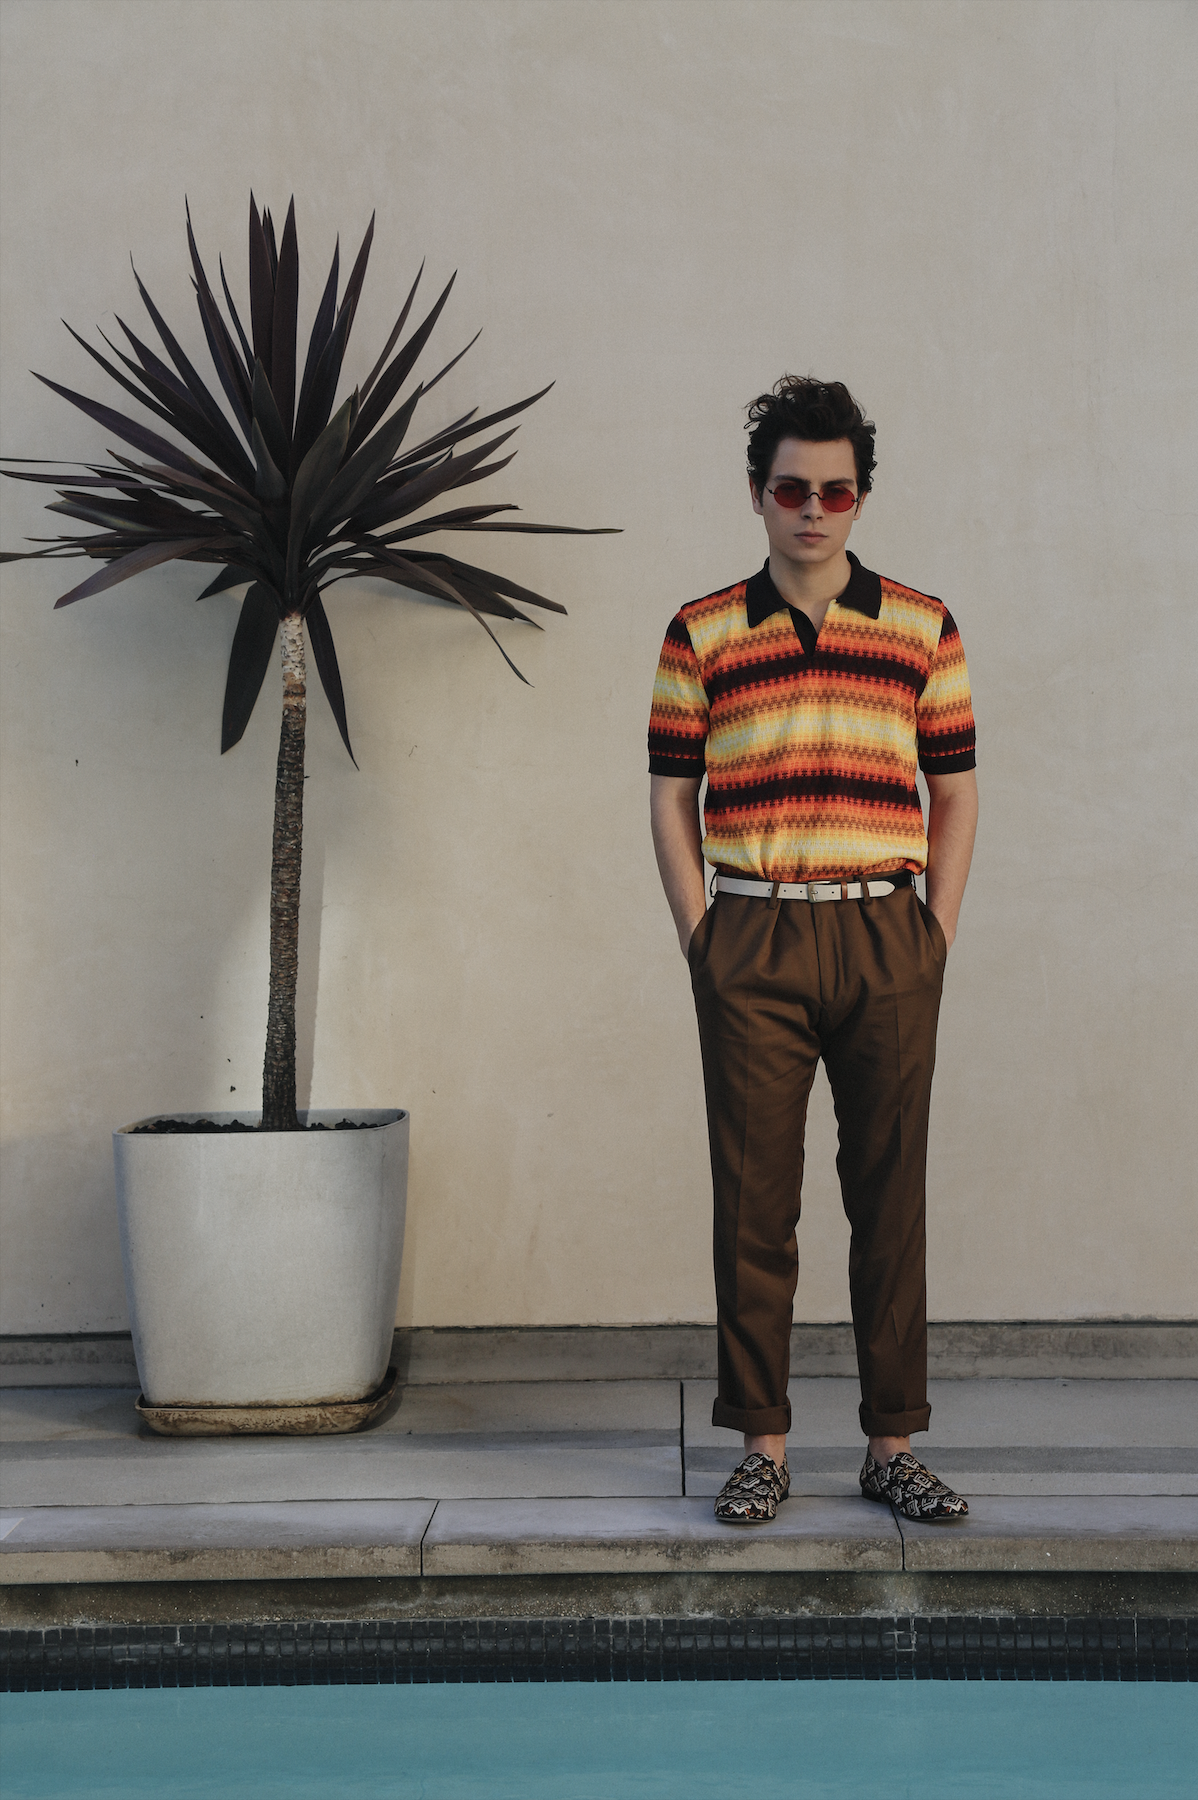 DRIES VAN NOTEN   shirt,   THE KOOPLES   pants, GUCCI shoes,   URBAN OUTFITTERS   belt, and stylist's own sunglasses.